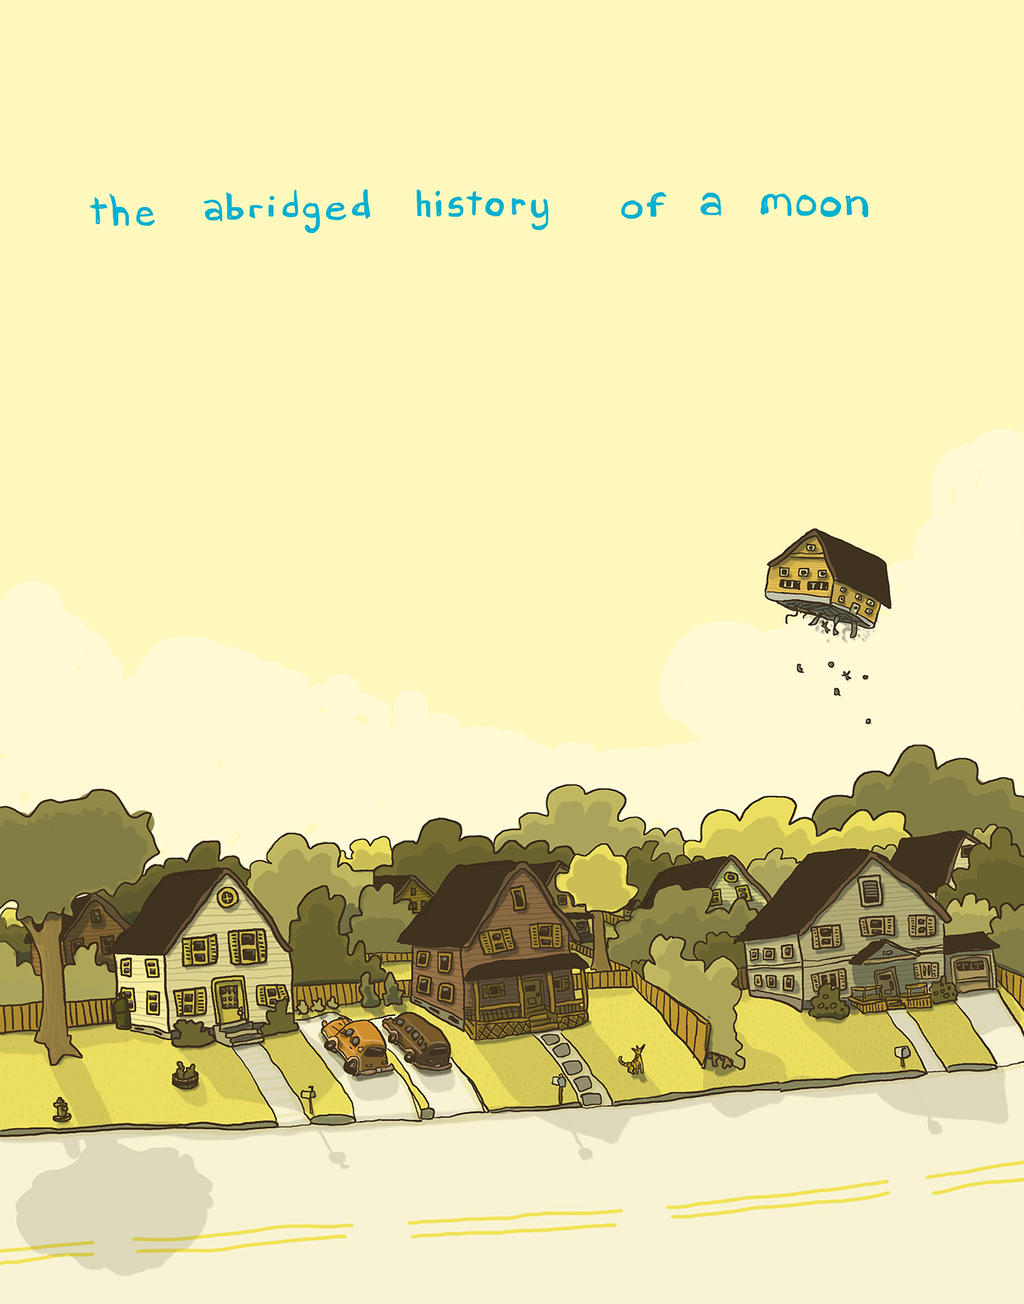 The Abridged History of a Moon by PattKelley